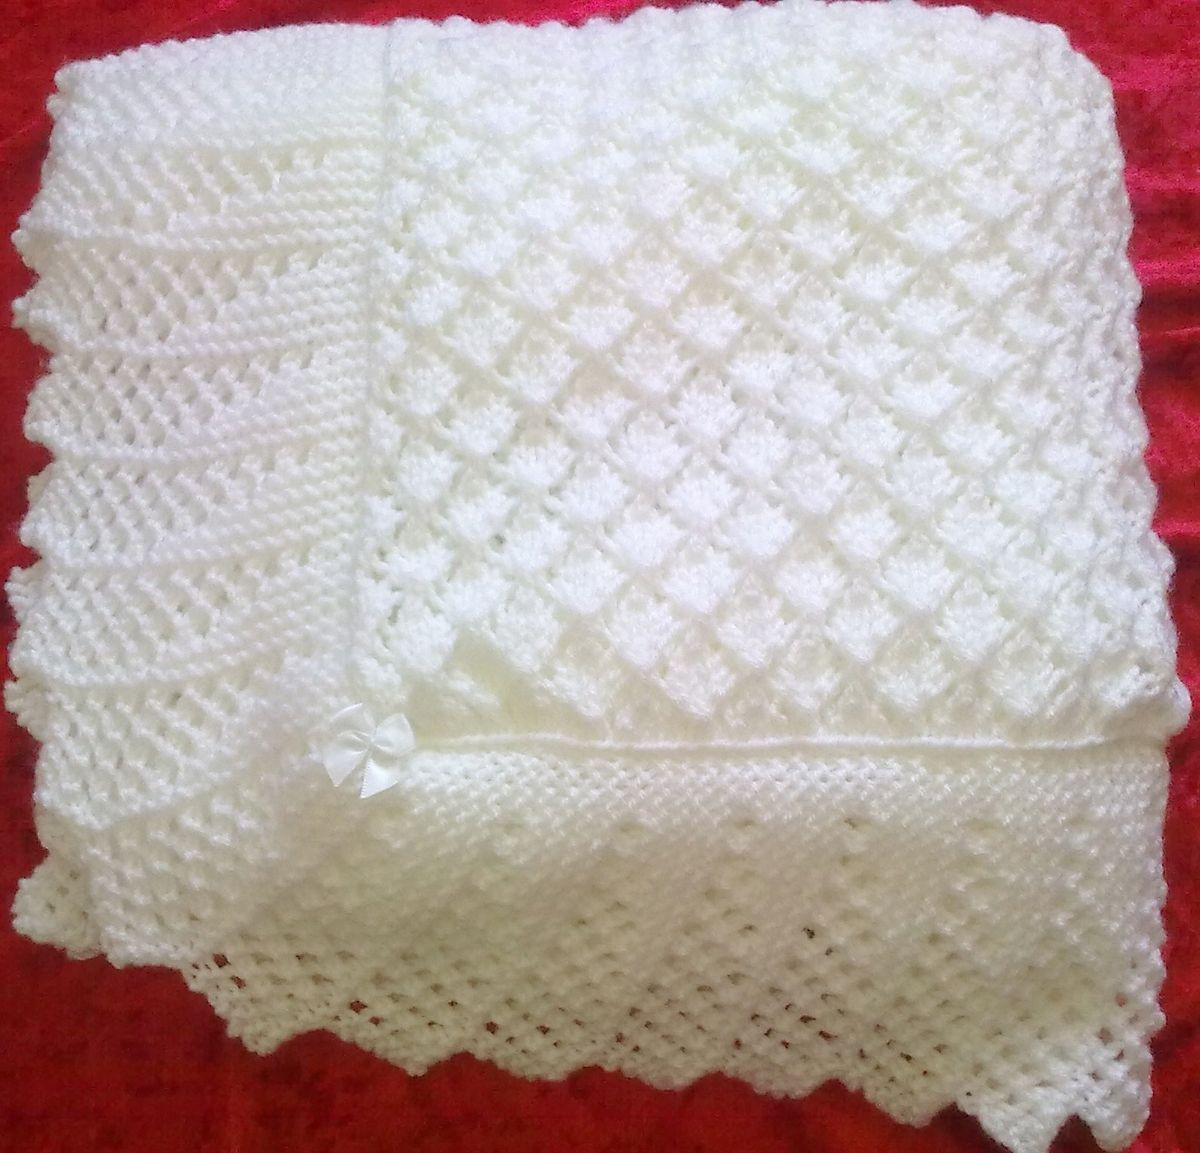 Knitting Patterns For Baby Shawls : Stunning New Hand Knitted Baby Shawl Blanket 36x36 Ins